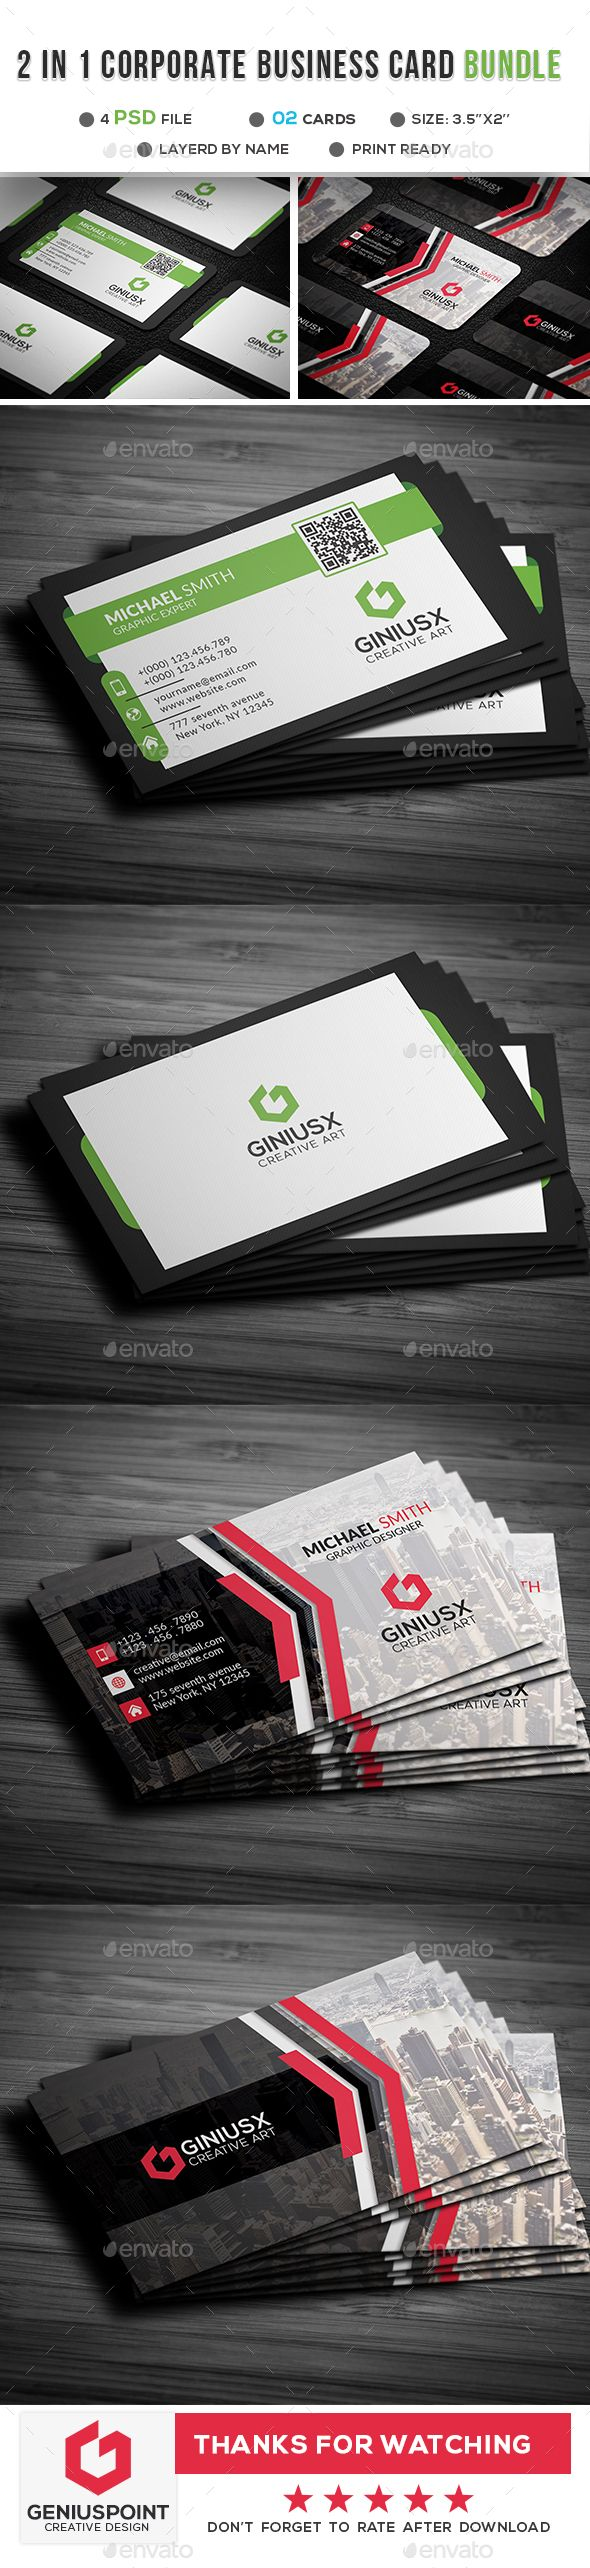 135 Best Business Cards Images On Pinterest